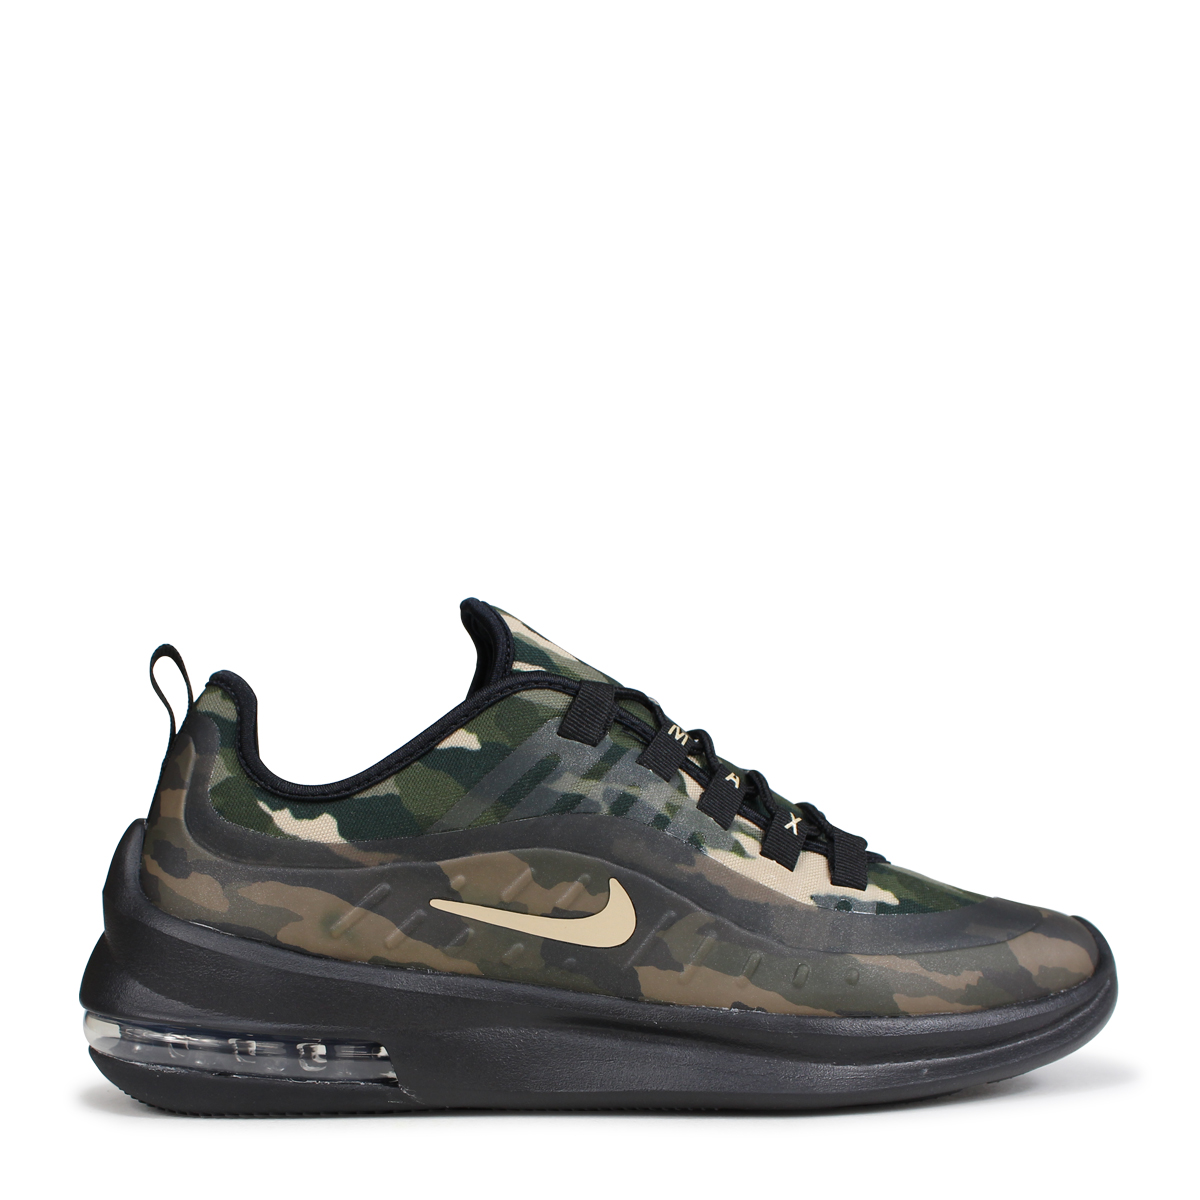 NIKE AIR MAX AXIS PREMIUM Kie Ney AMAX axis sneakers men AA2148 002 duck [load planned Shinnyu load in reservation product 97 containing] [189]